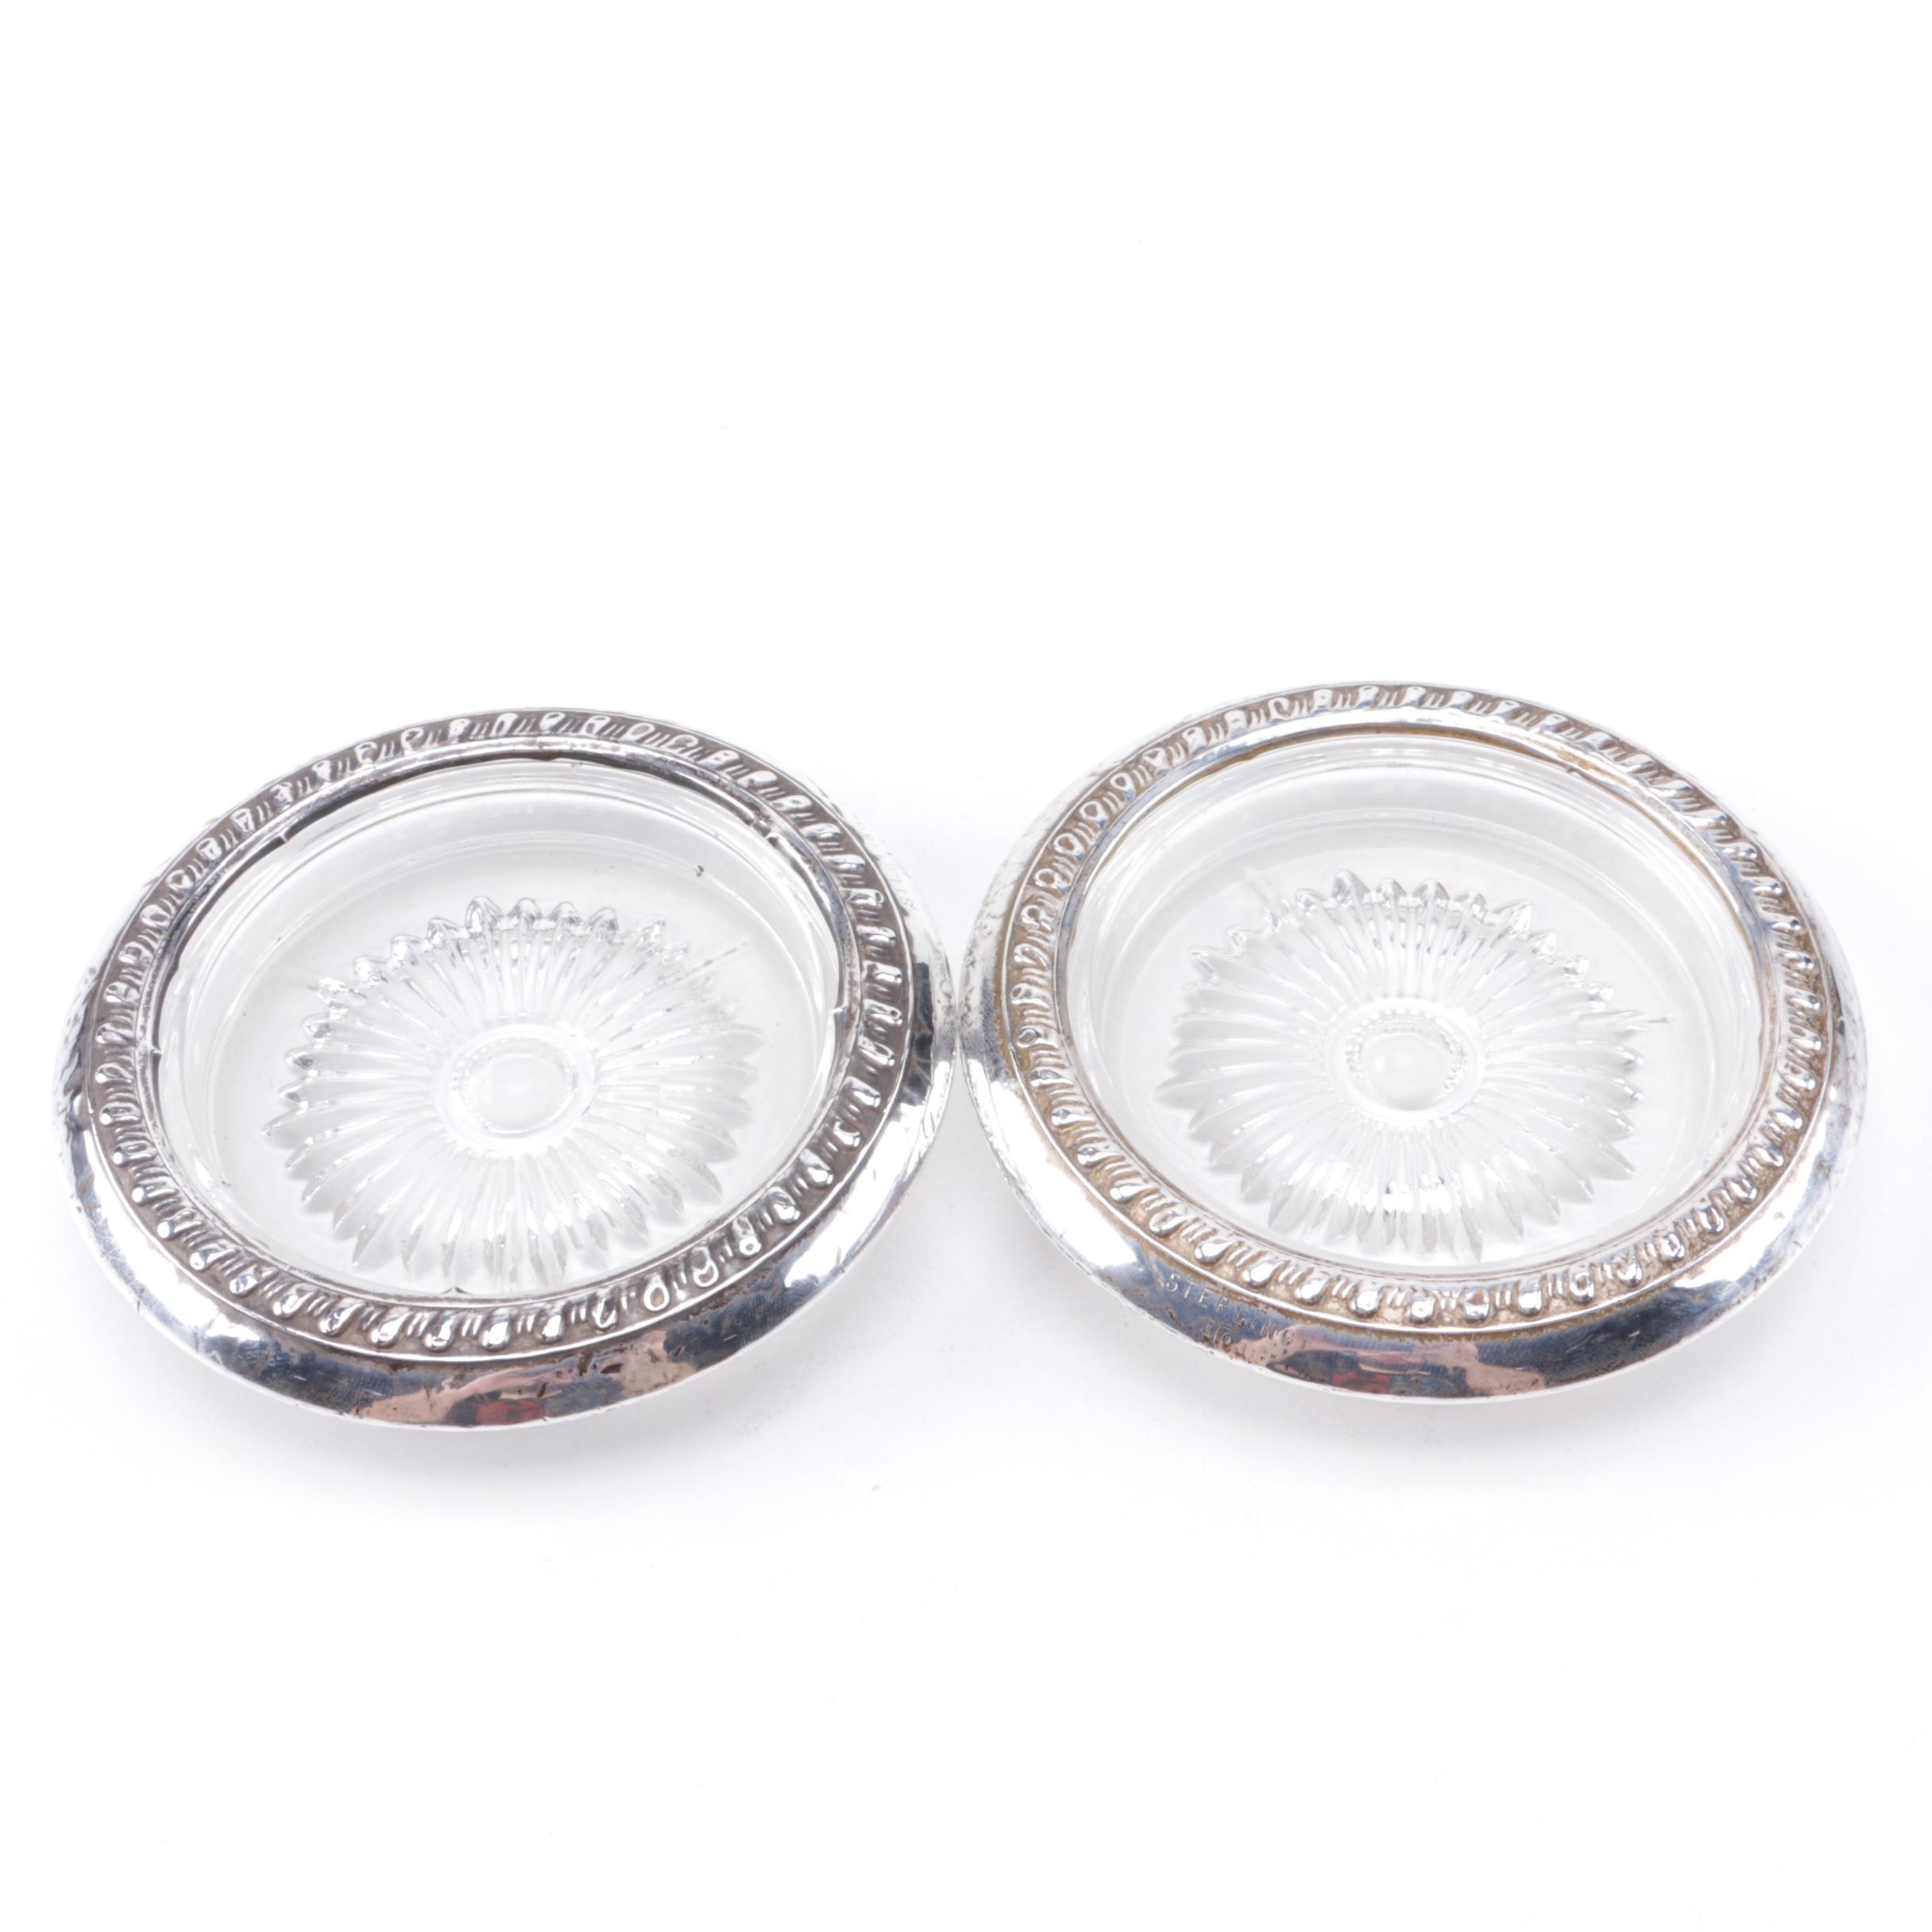 STC Sterling Rimmed Glass Coasters